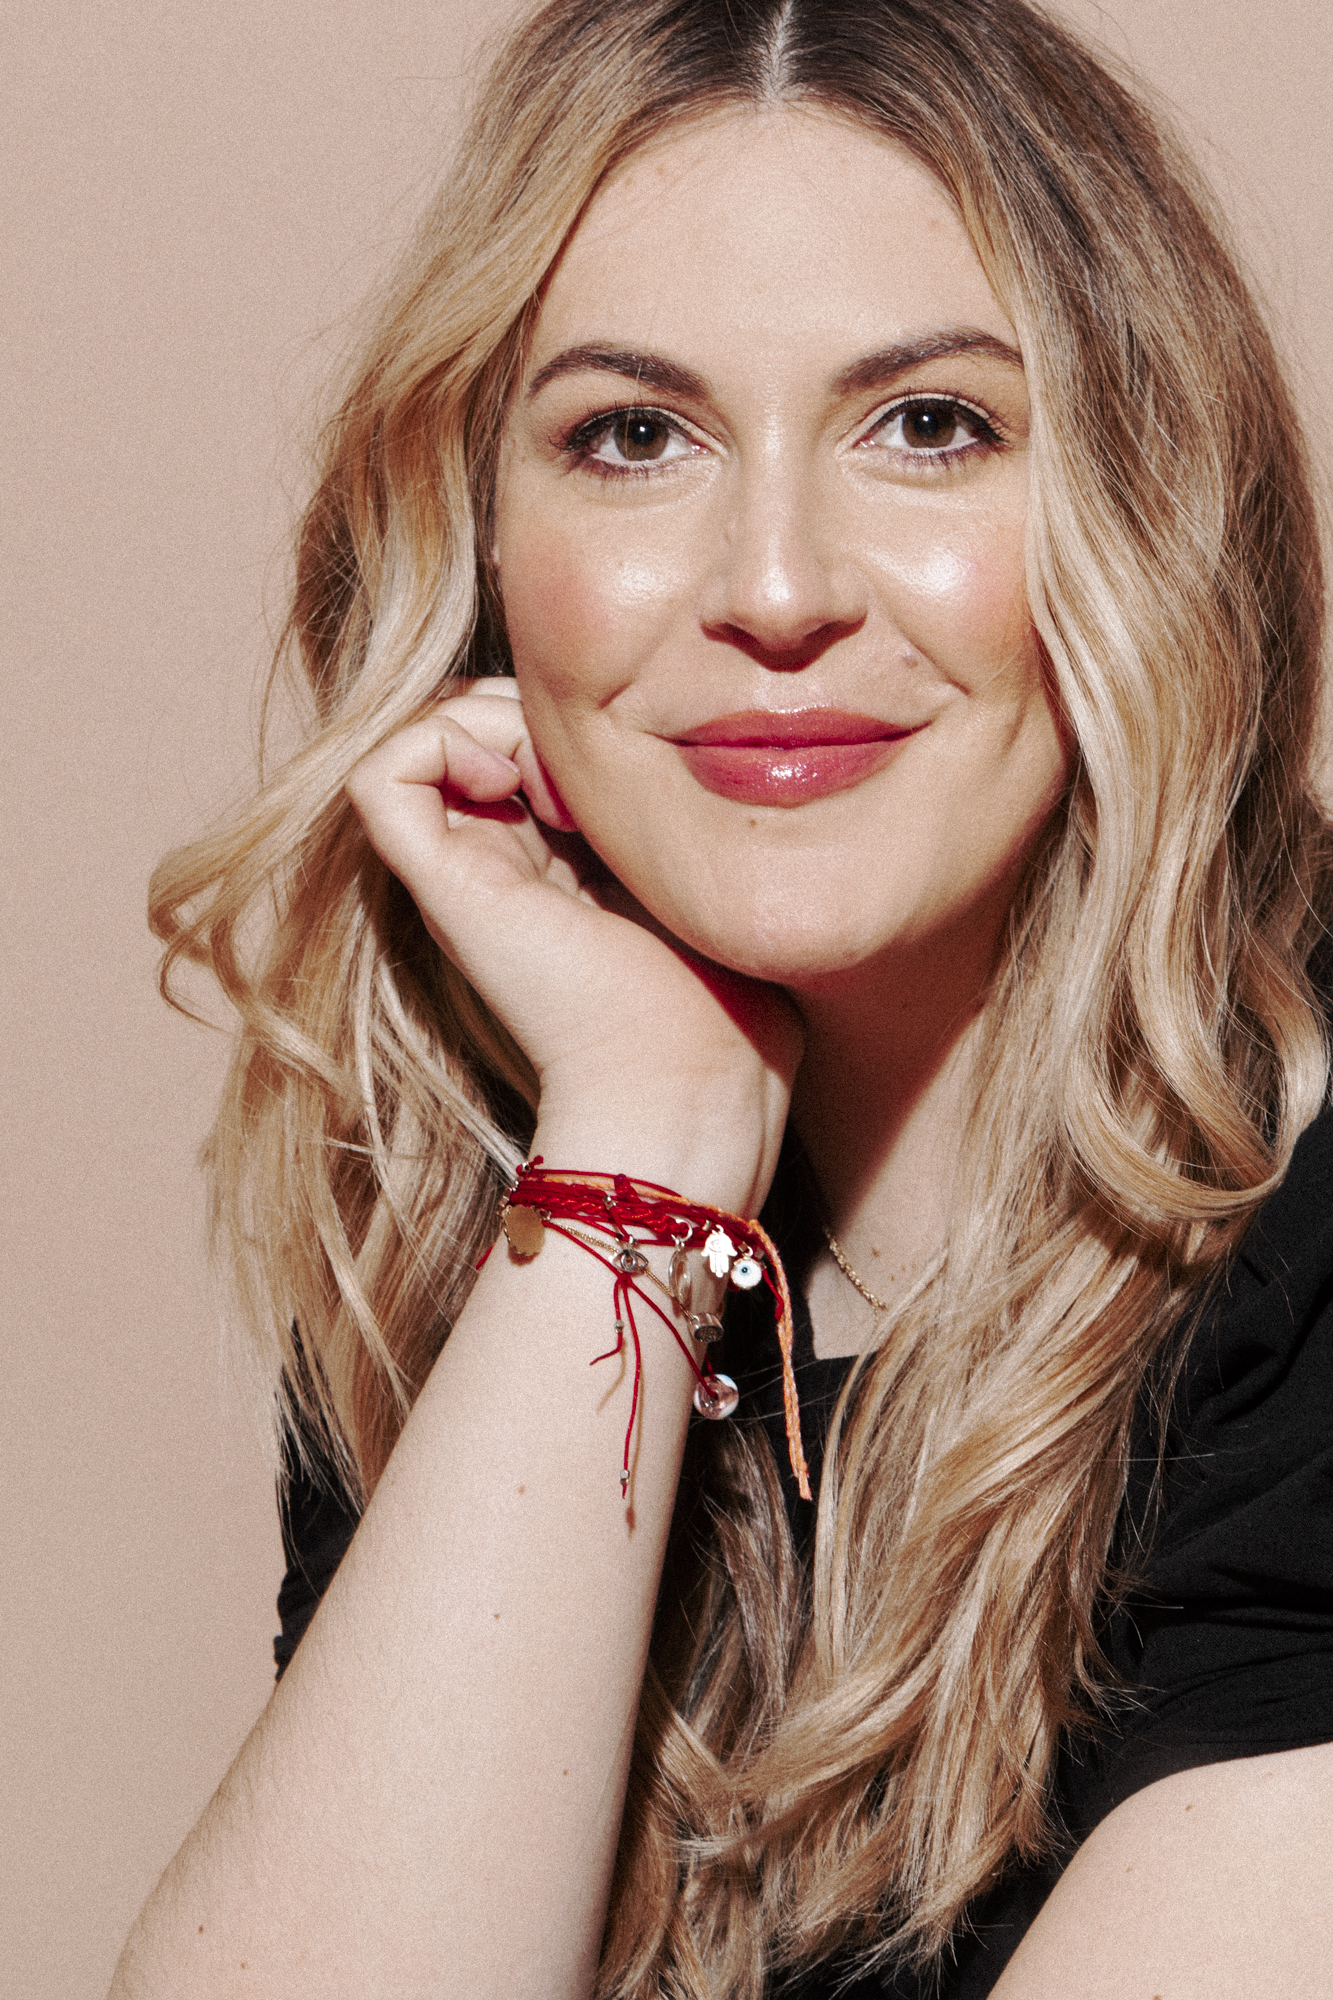 Rachel Liverman | Co-Founder and CEO, Glowbar